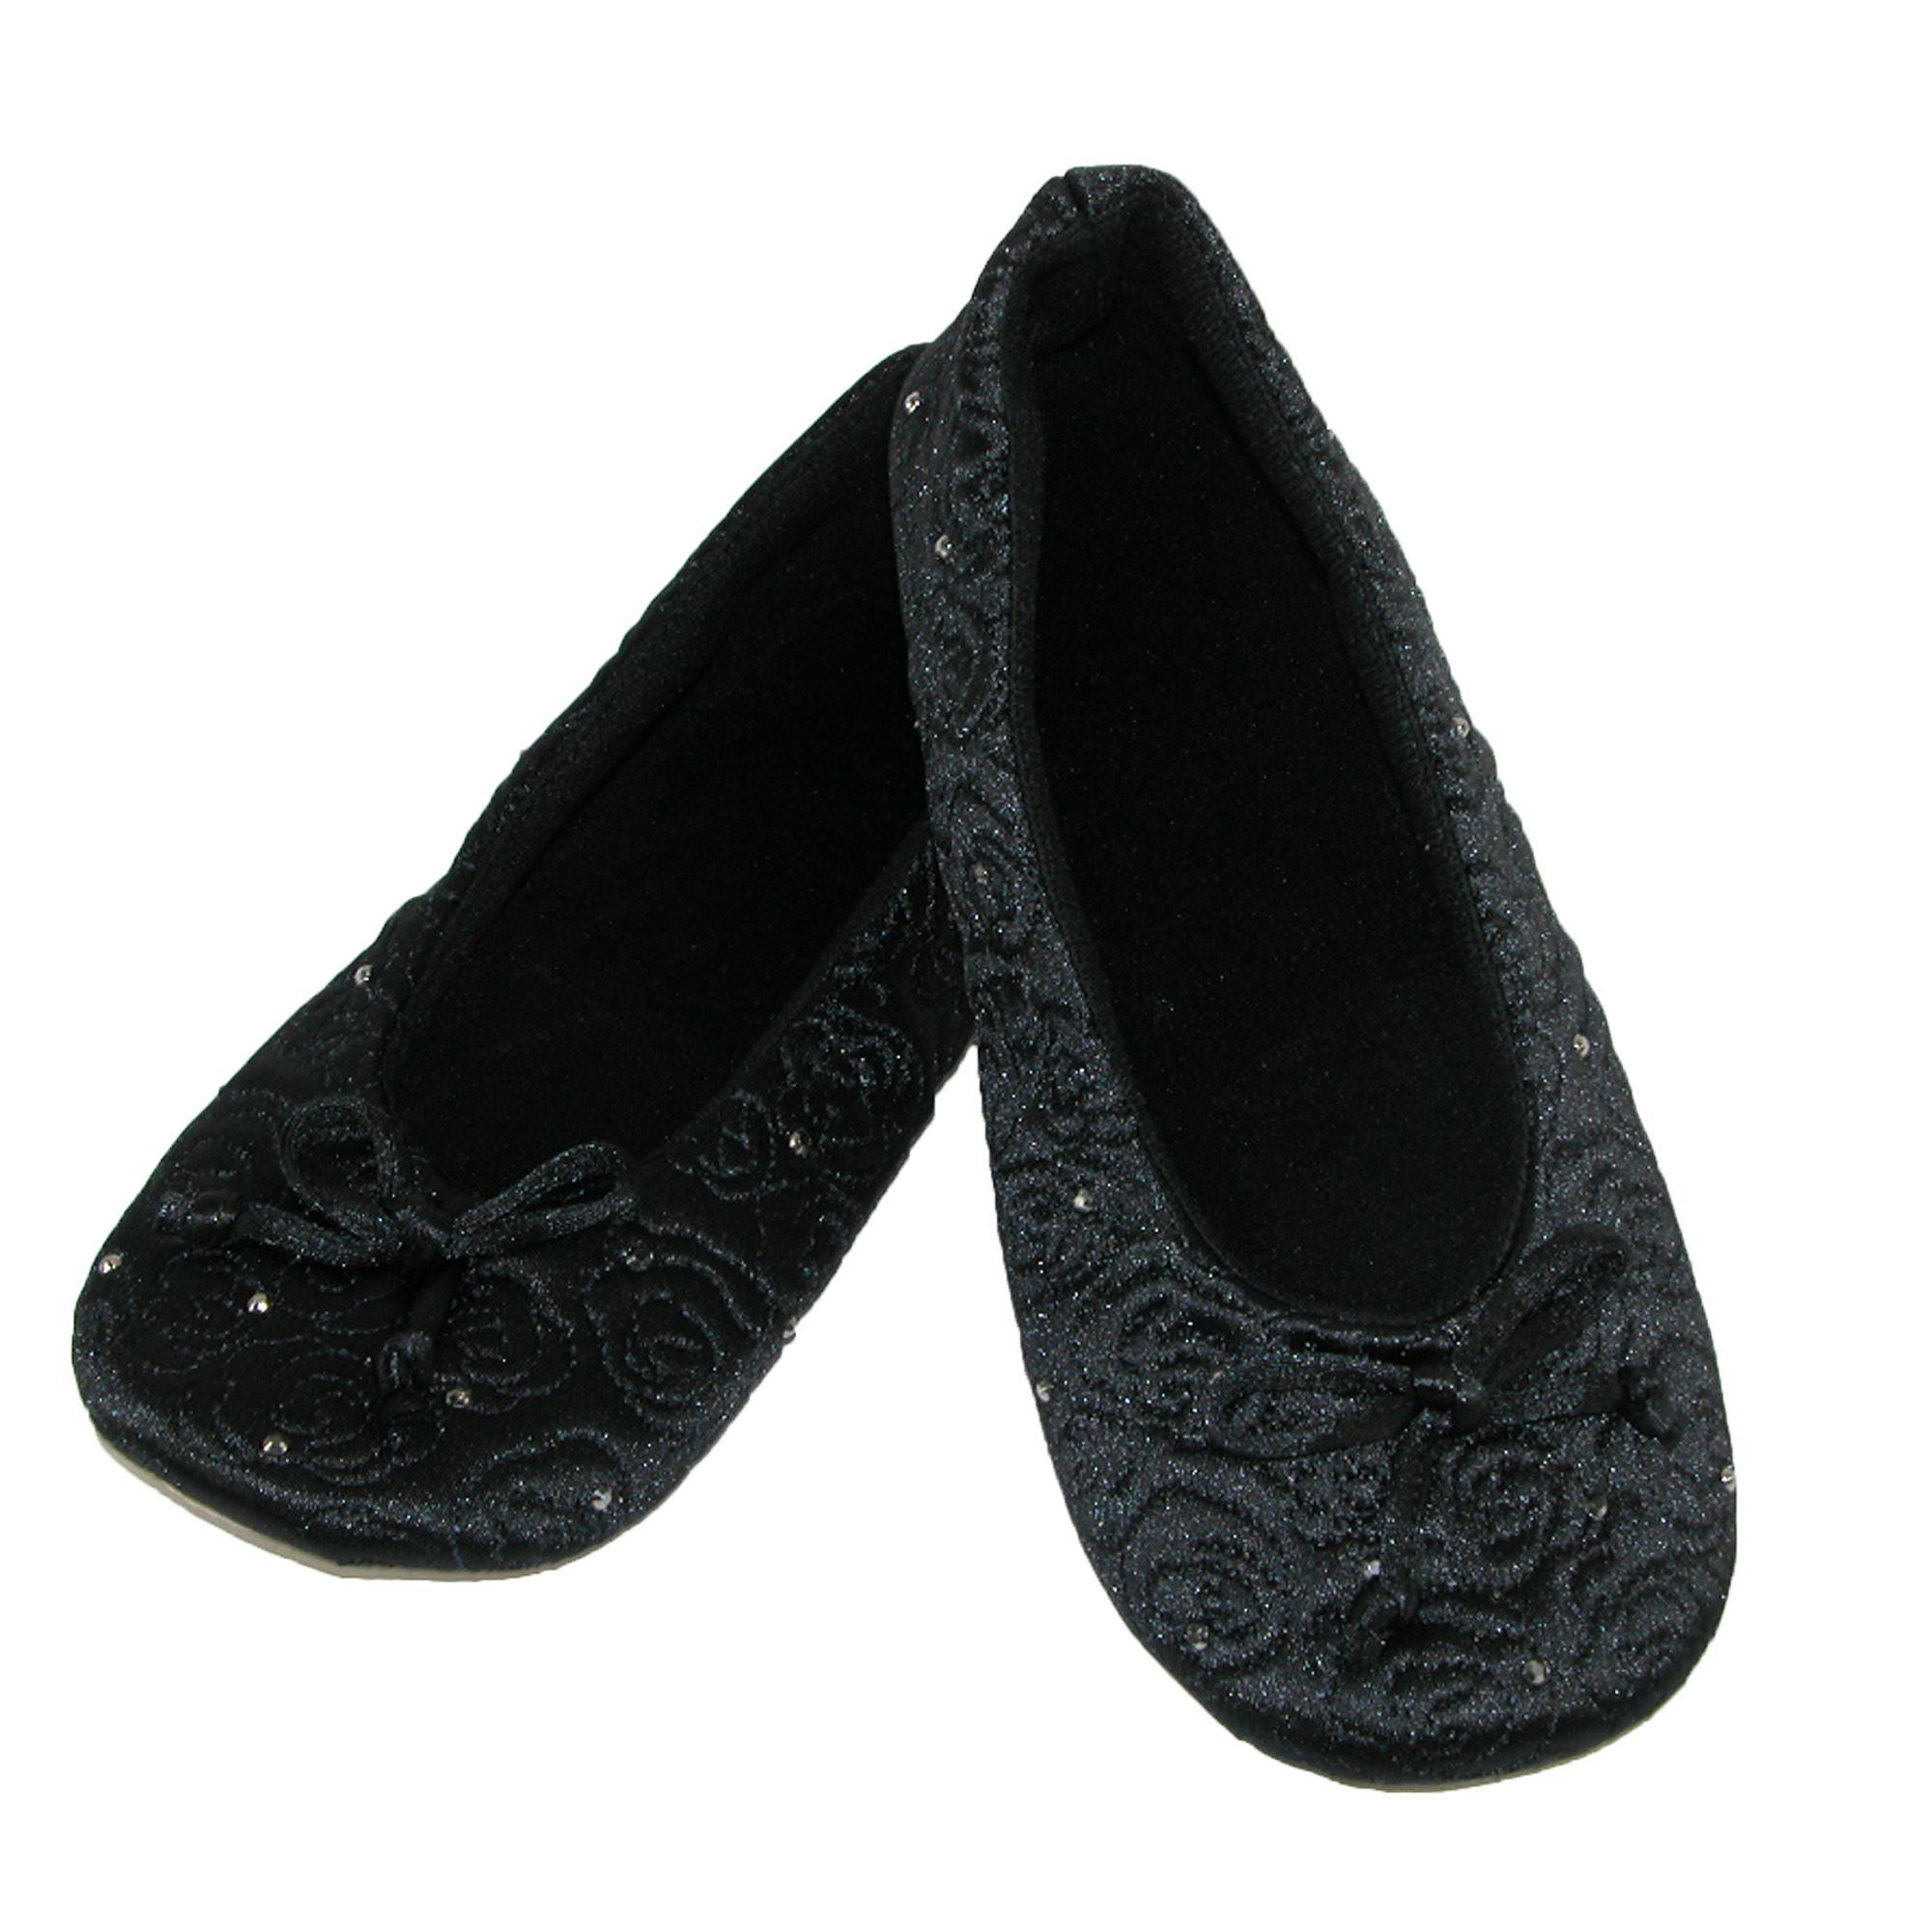 New-Isotoner-Women-039-s-Terry-Lined-Rose-Quilted-Ballerina-Slippers thumbnail 4